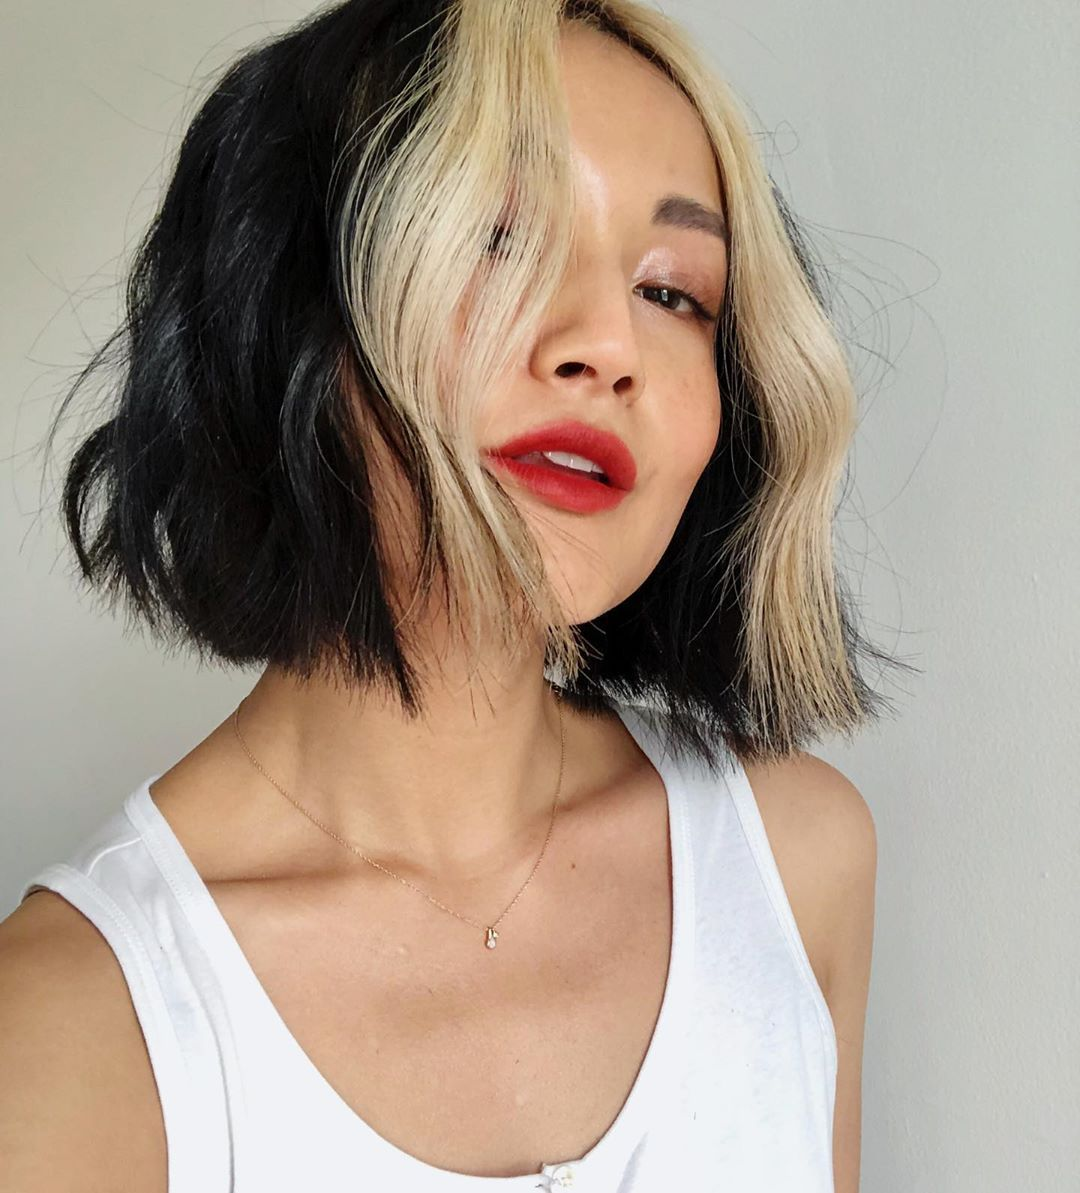 The Hair Color Trends You'll See Everywhere This Year